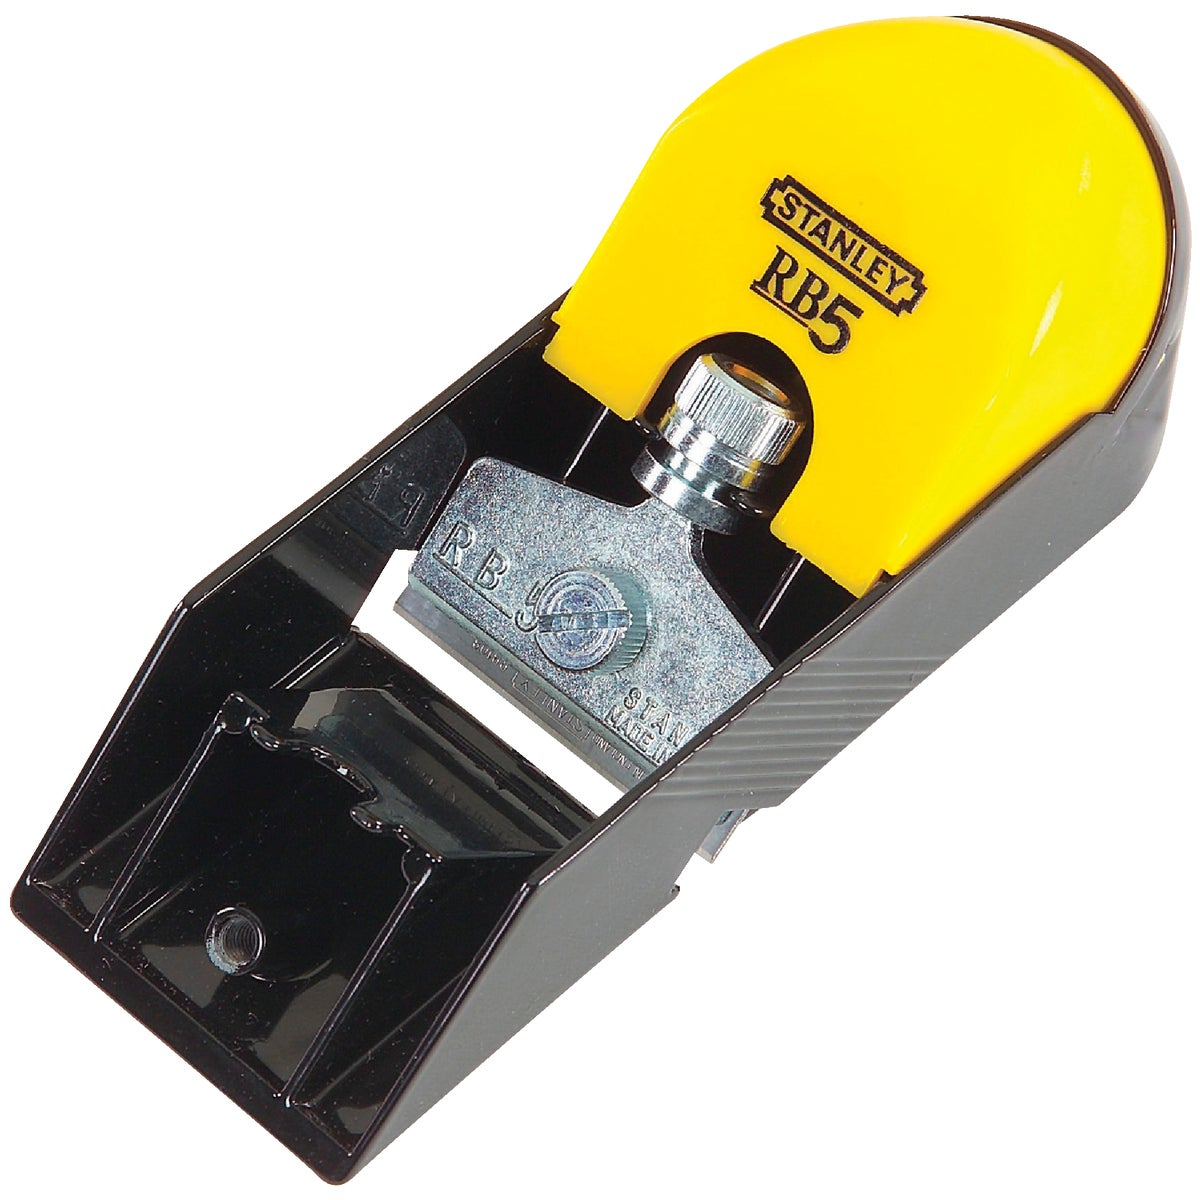 MINI BLOCK PLANE - 12-105 by Stanley Tools